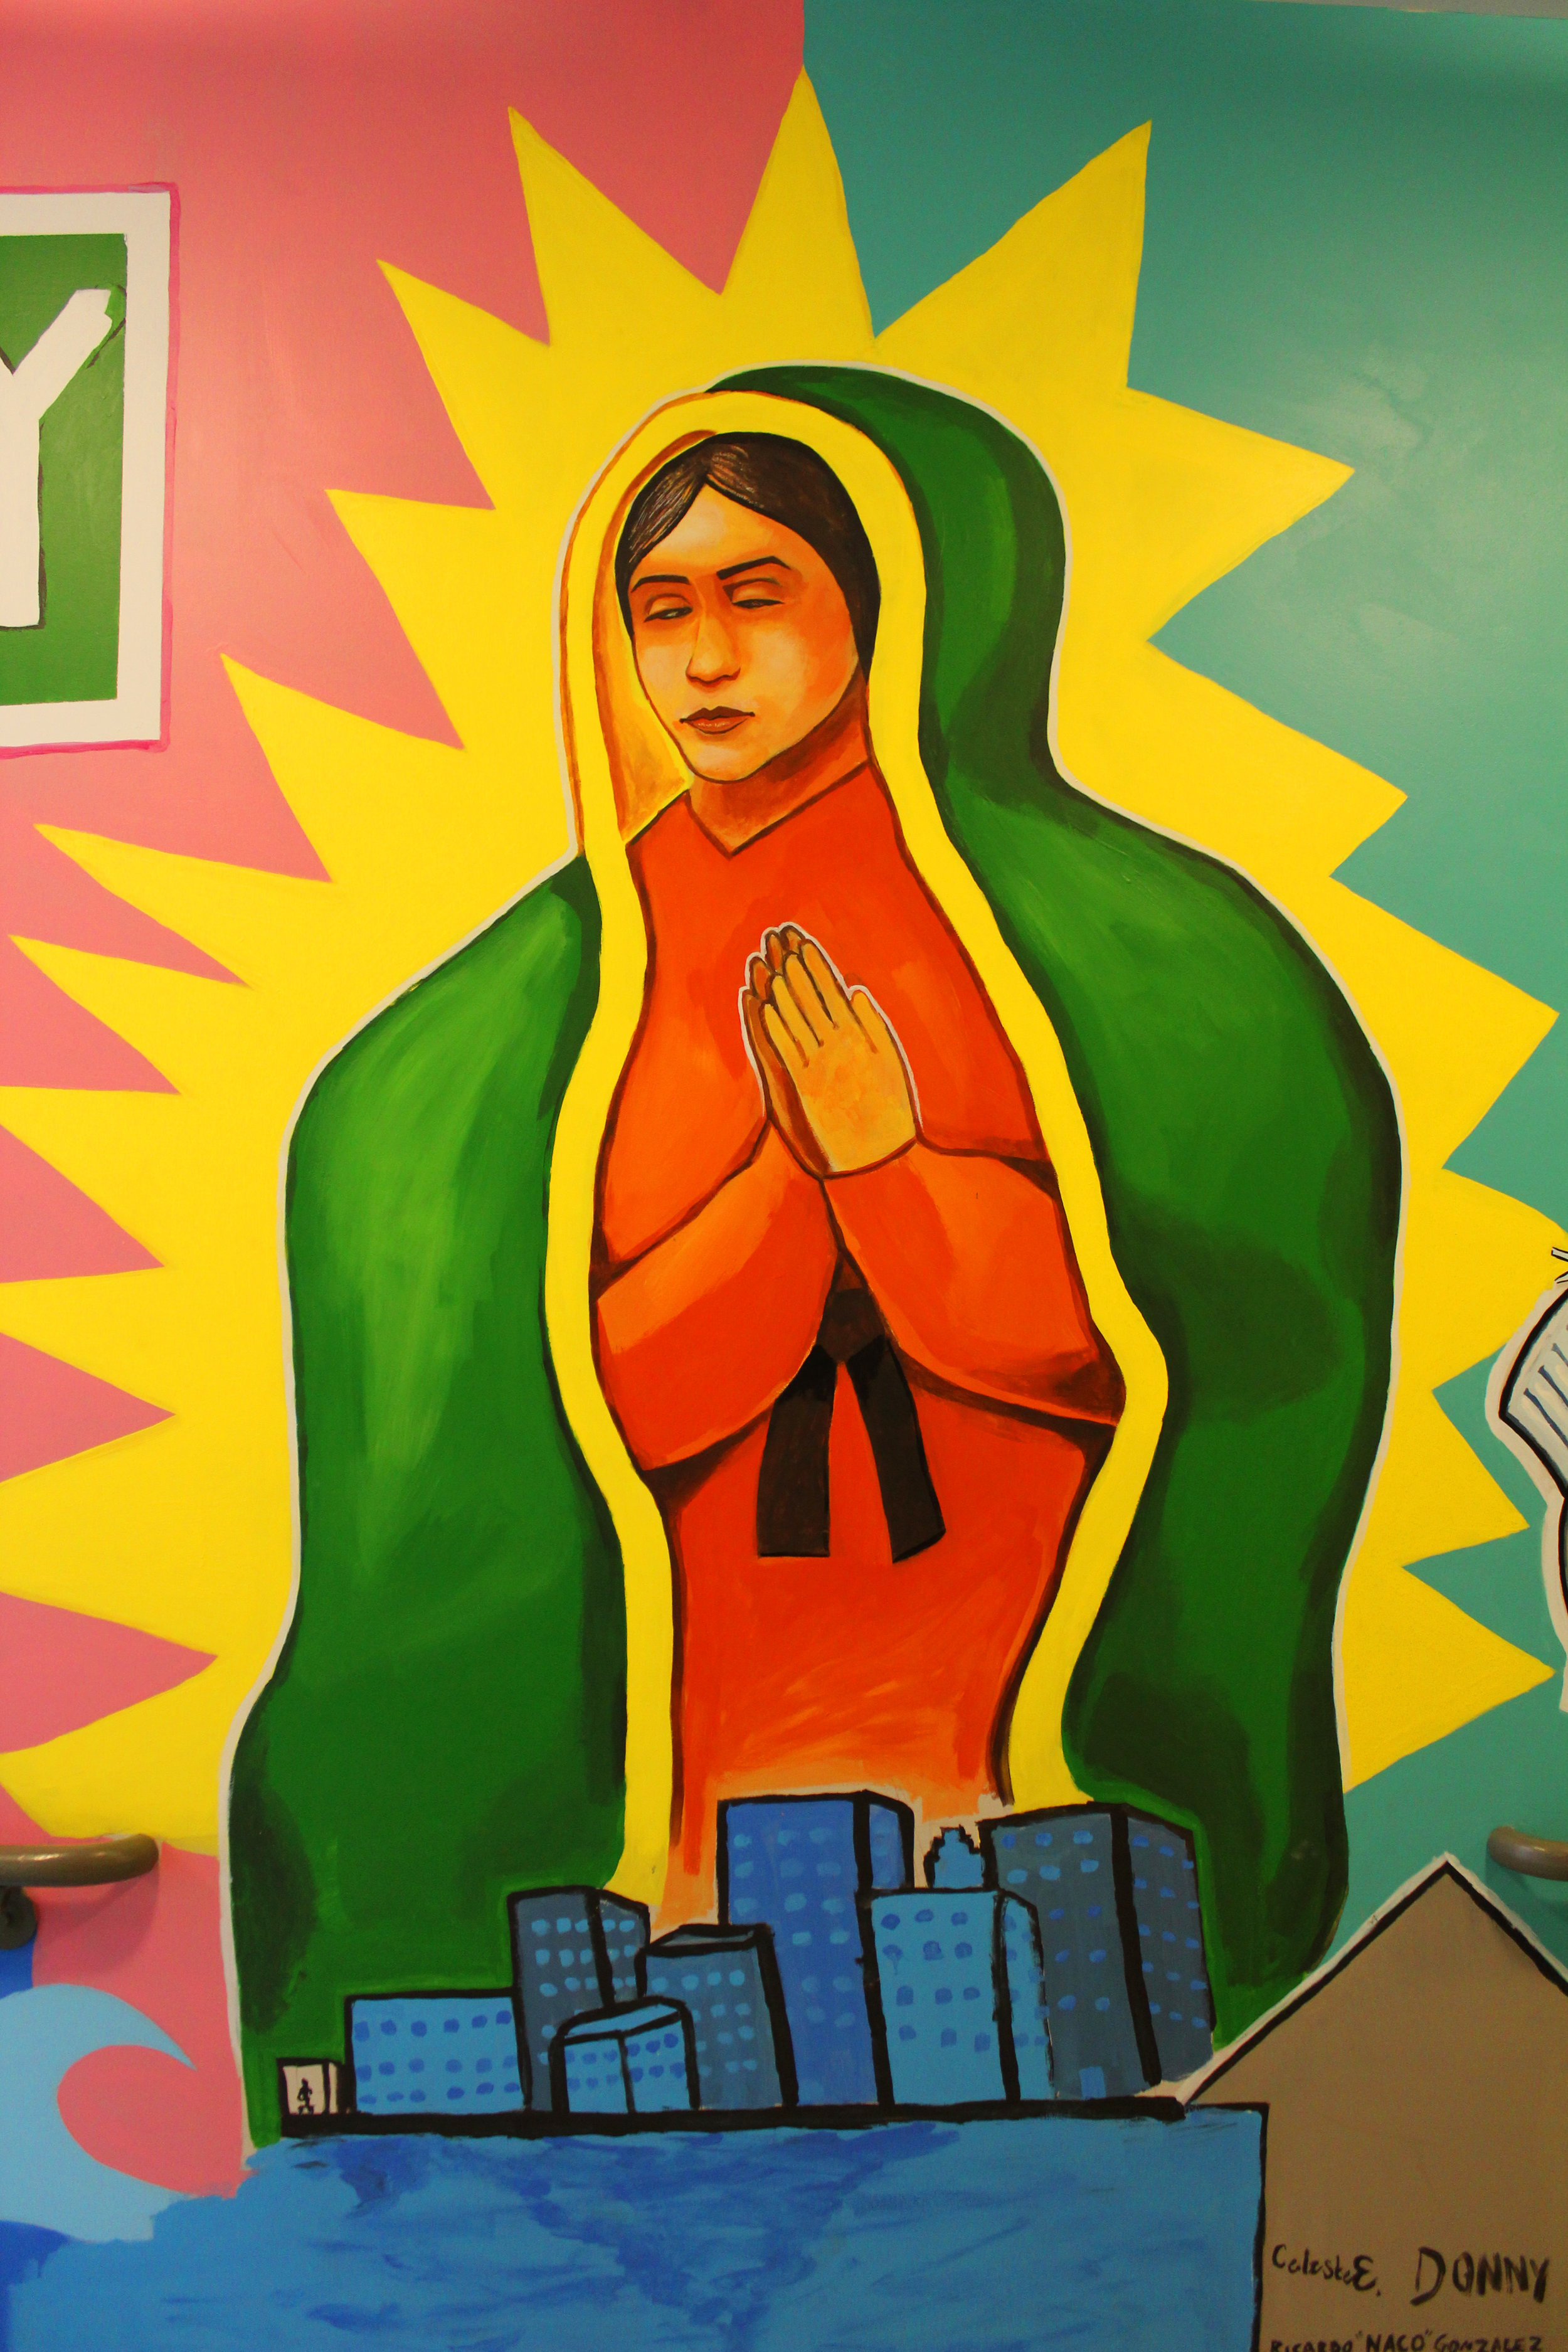 Detail of a Virgin Mary figure above the city of Grand Rapids on mural in Gallery parking ramp